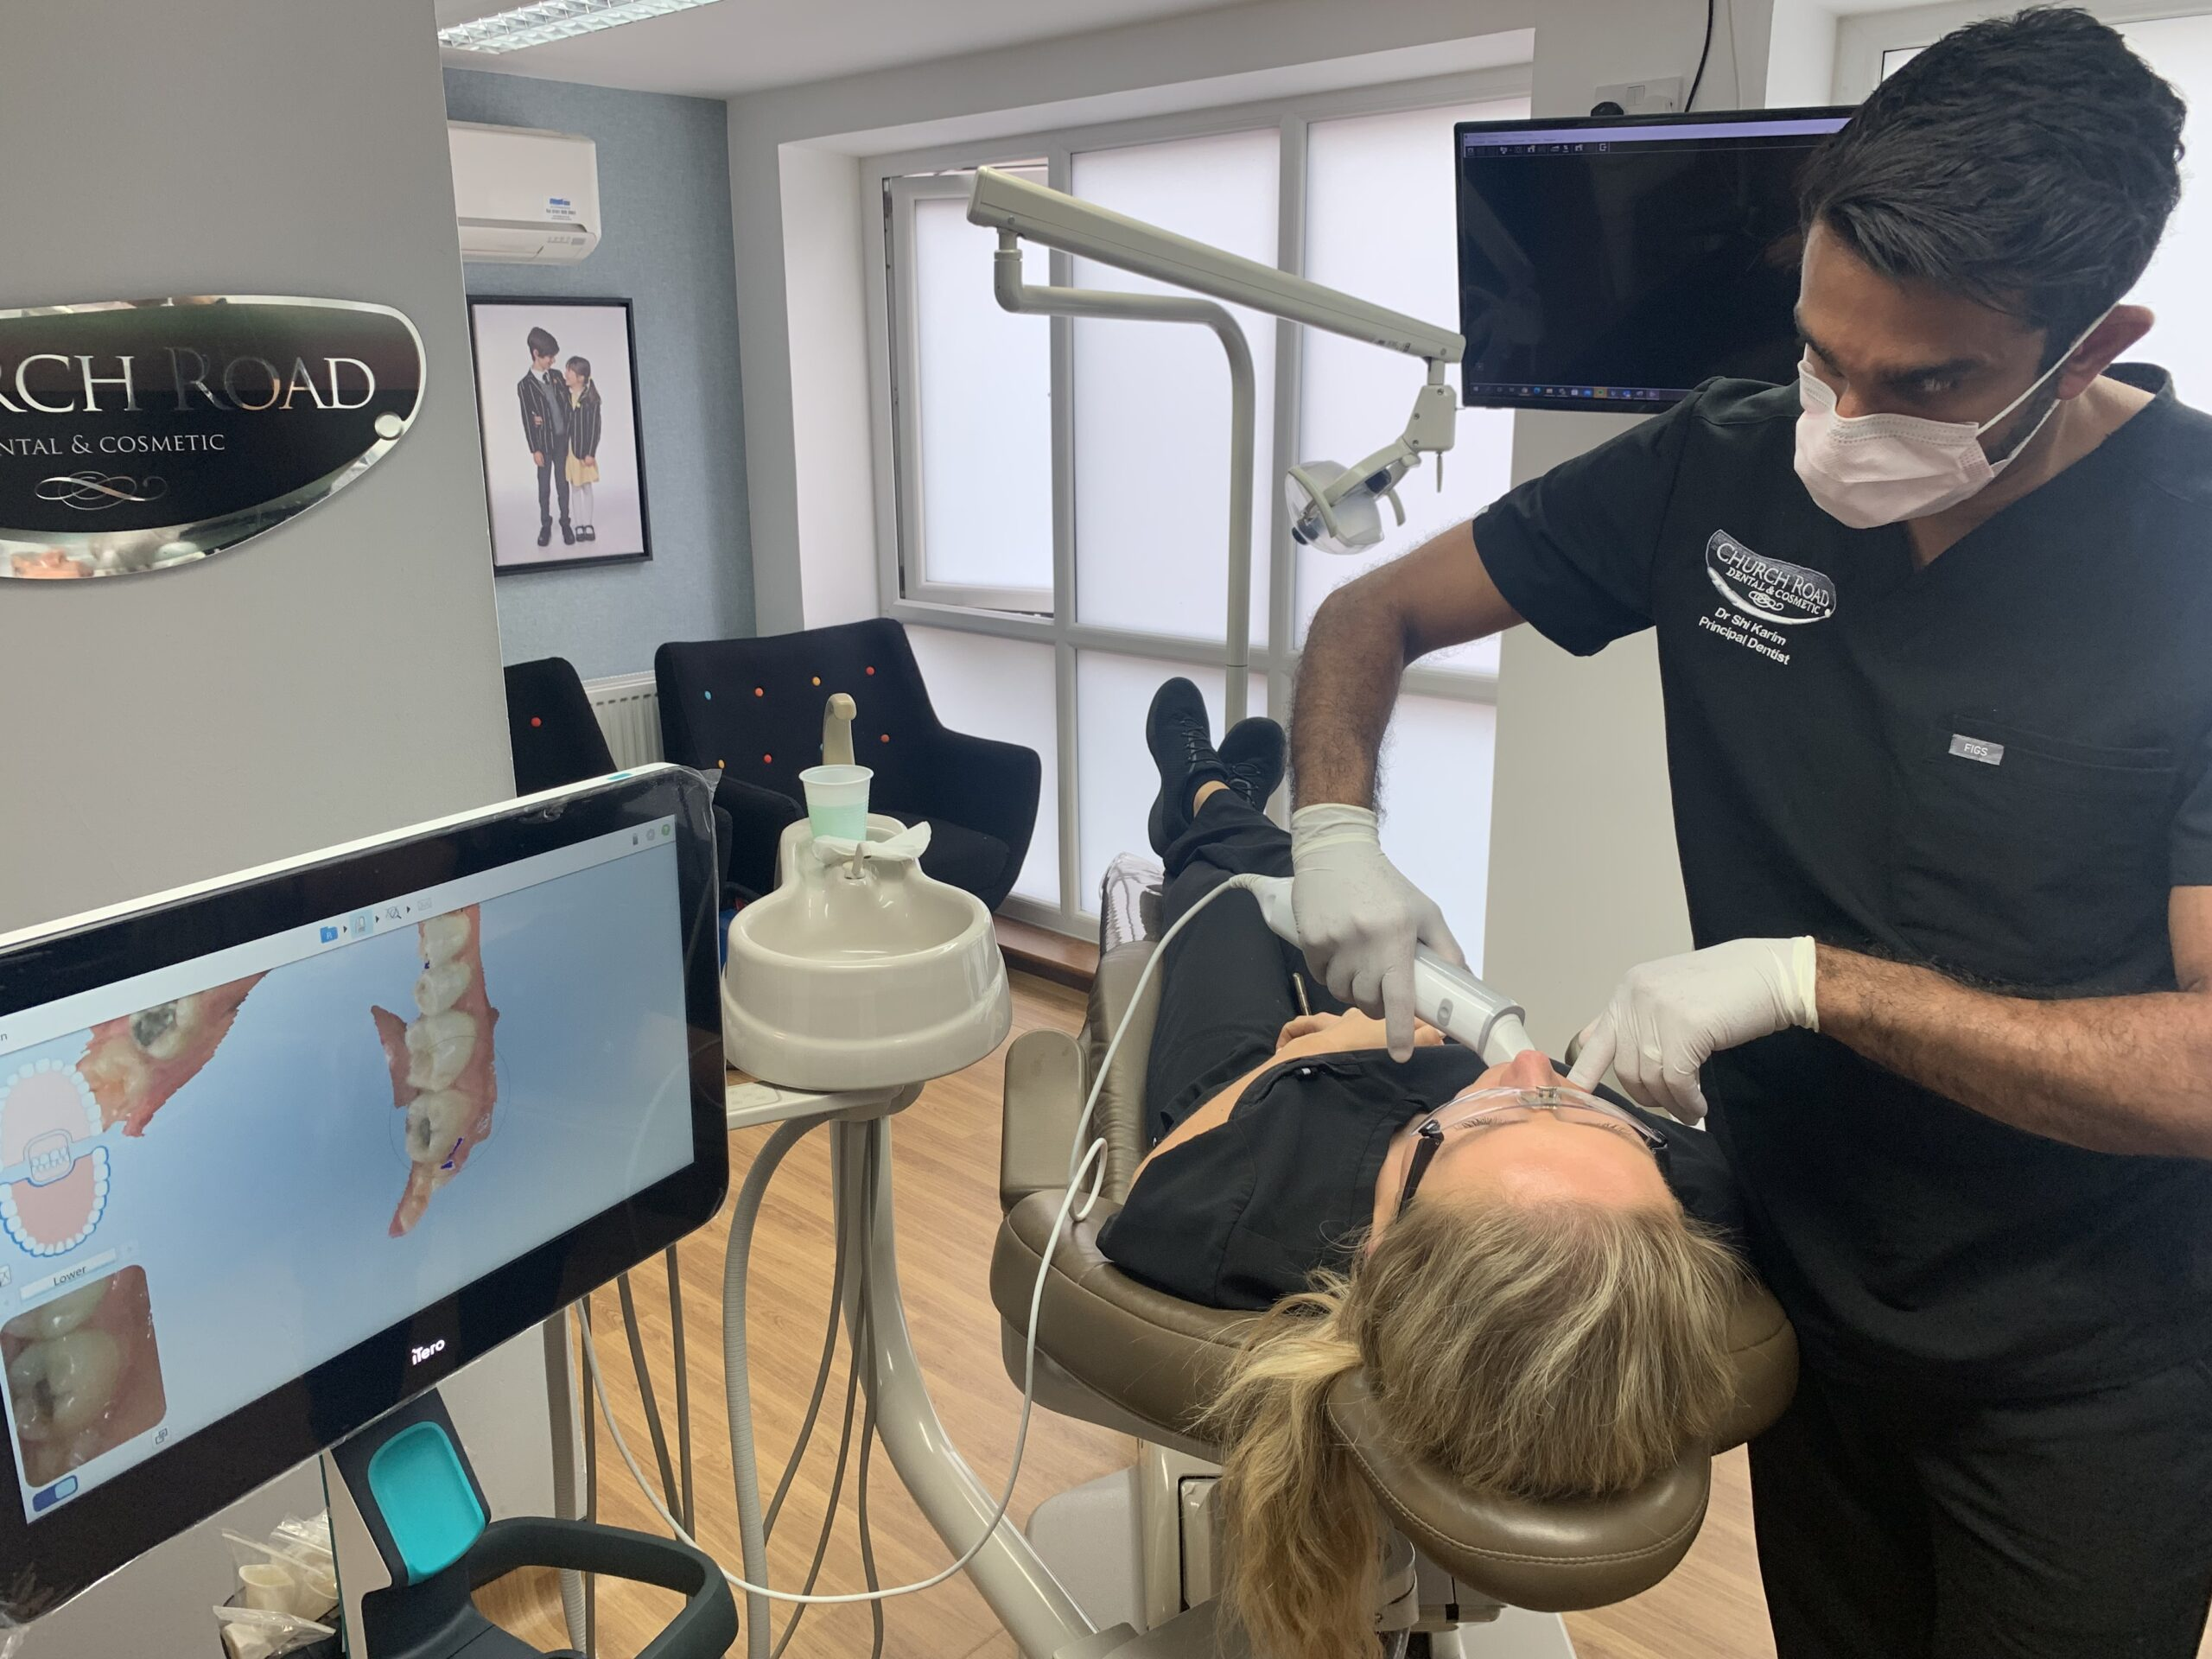 to show the iTero invisalign scanner being used